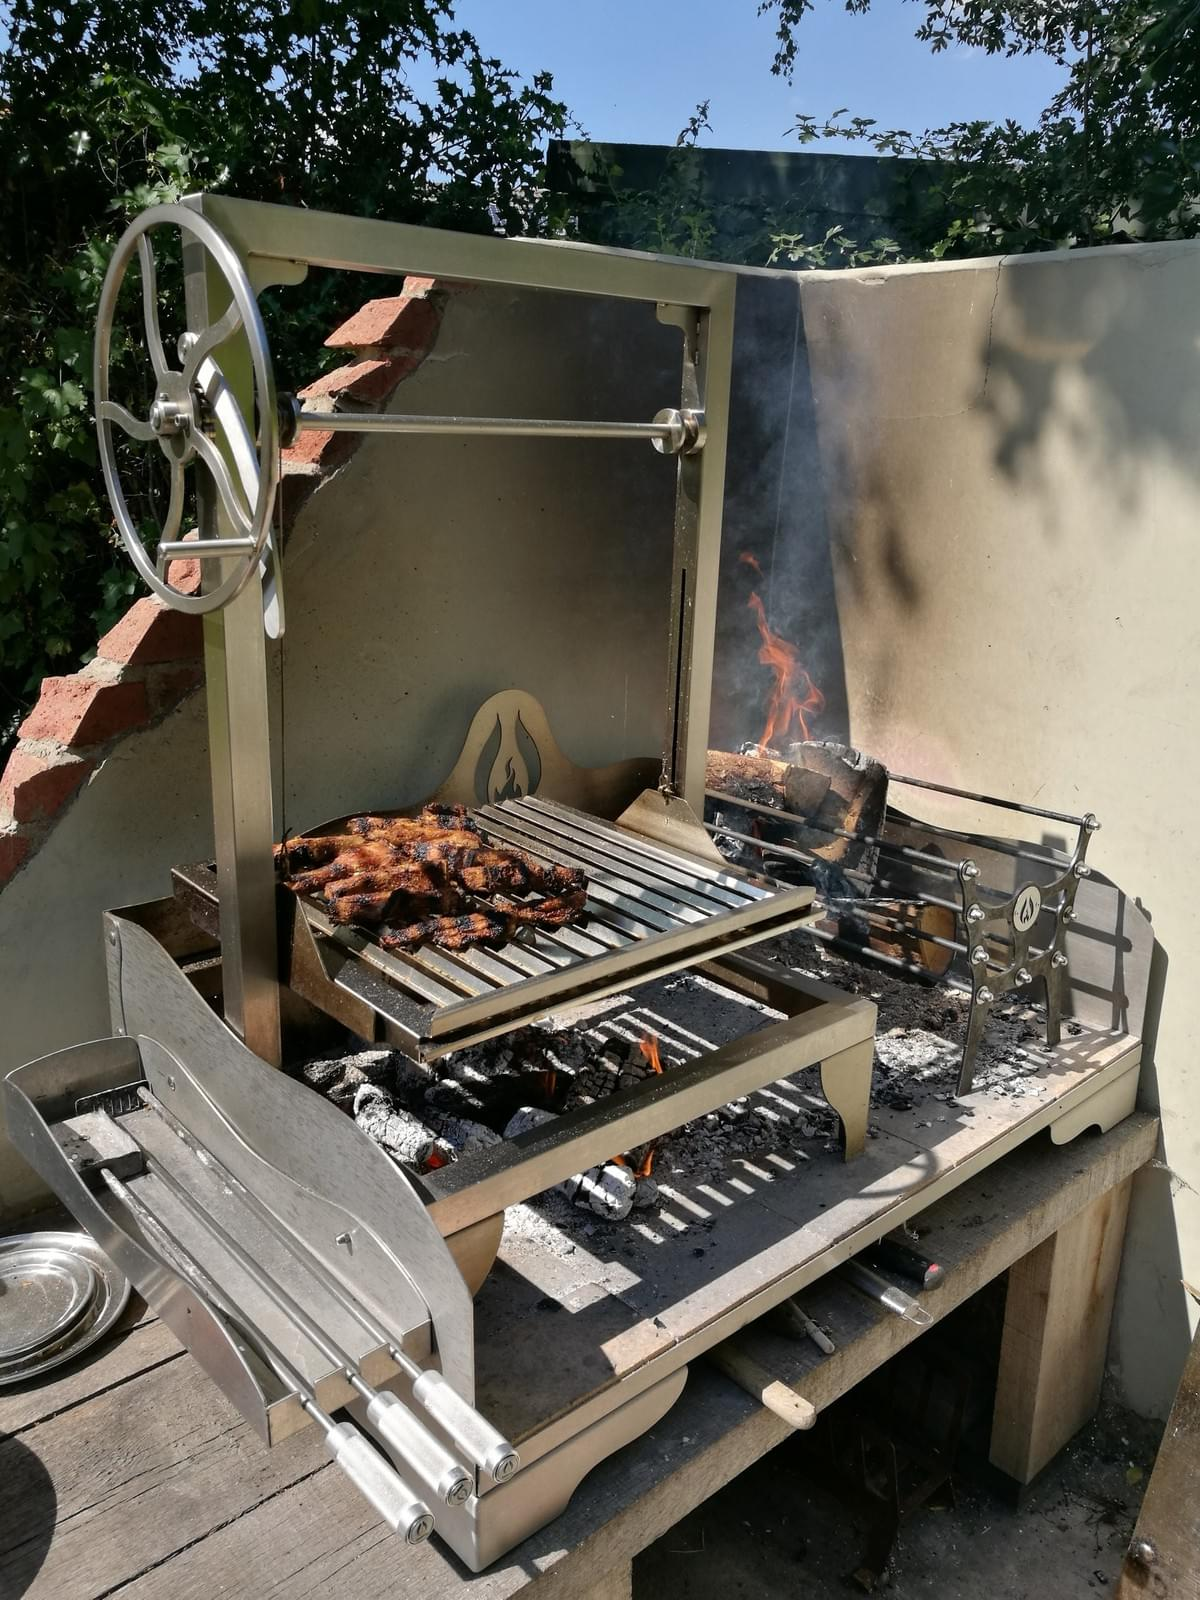 Asado Saltero Parrilla Grill on Small Tabletop Fire Table with Brasero made in the UK